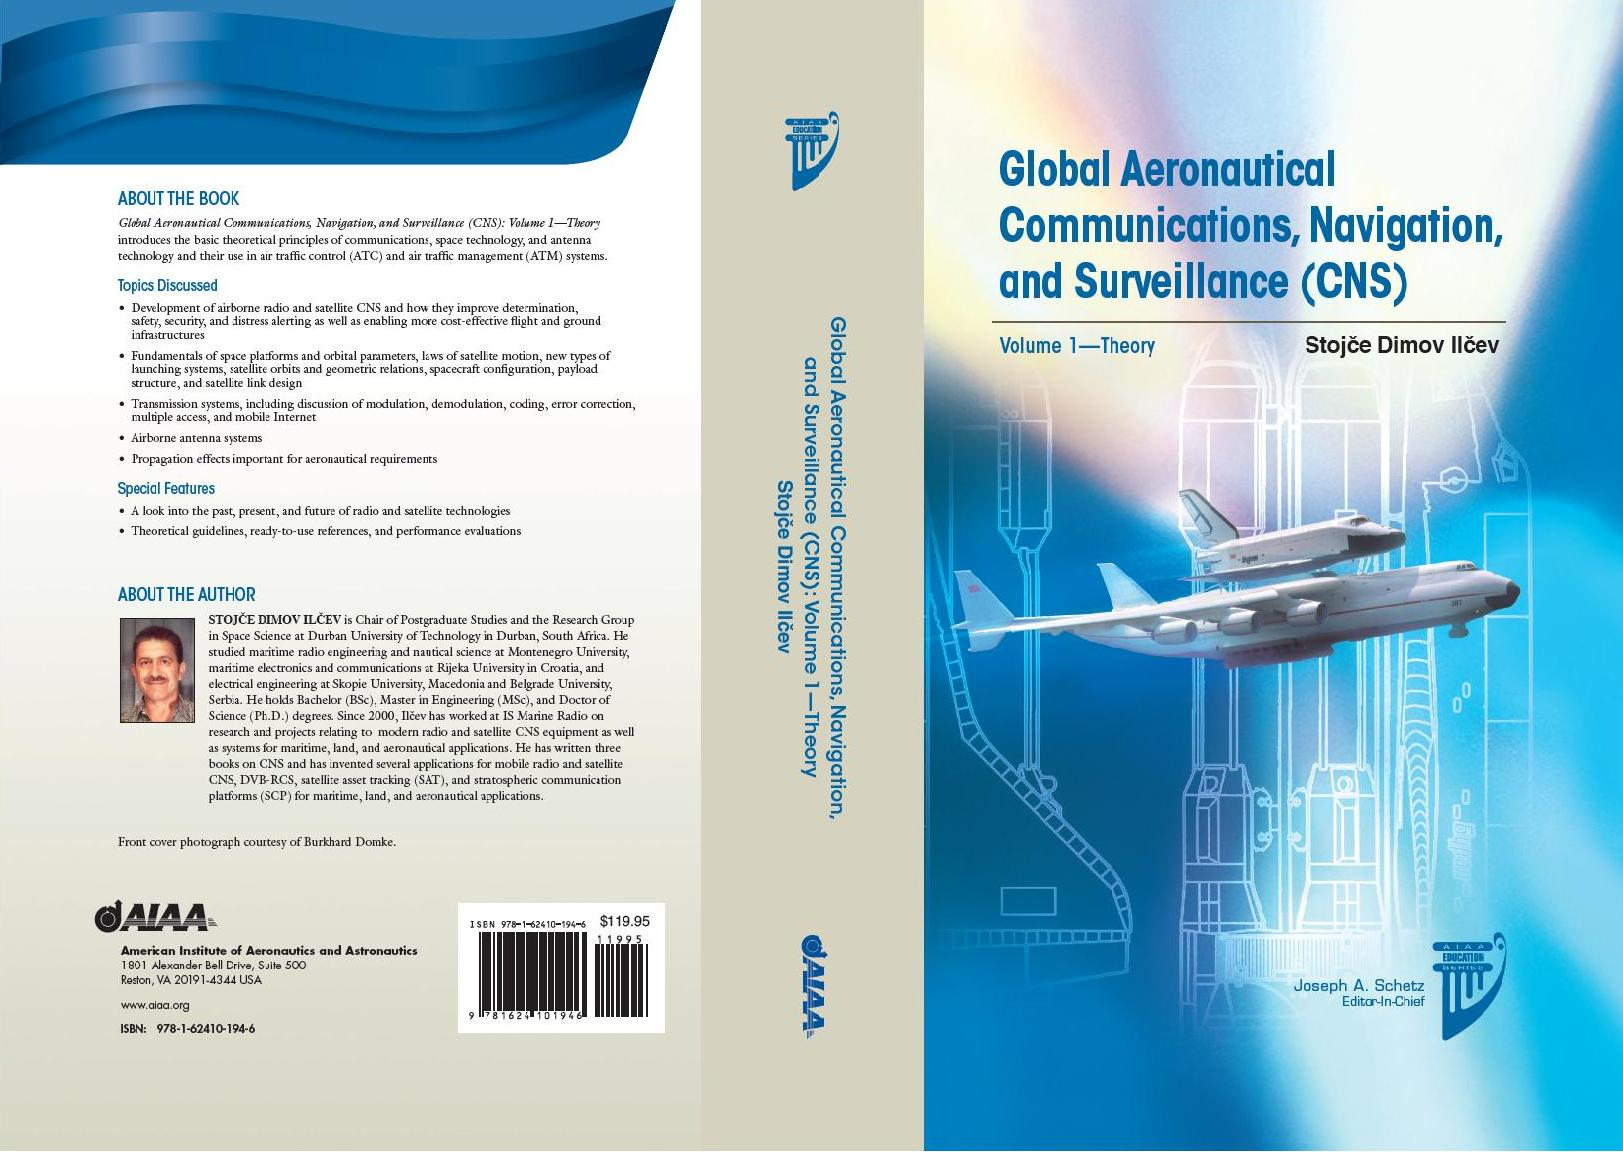 4th Book of Prof. Ilcev as only Author Published in 2013